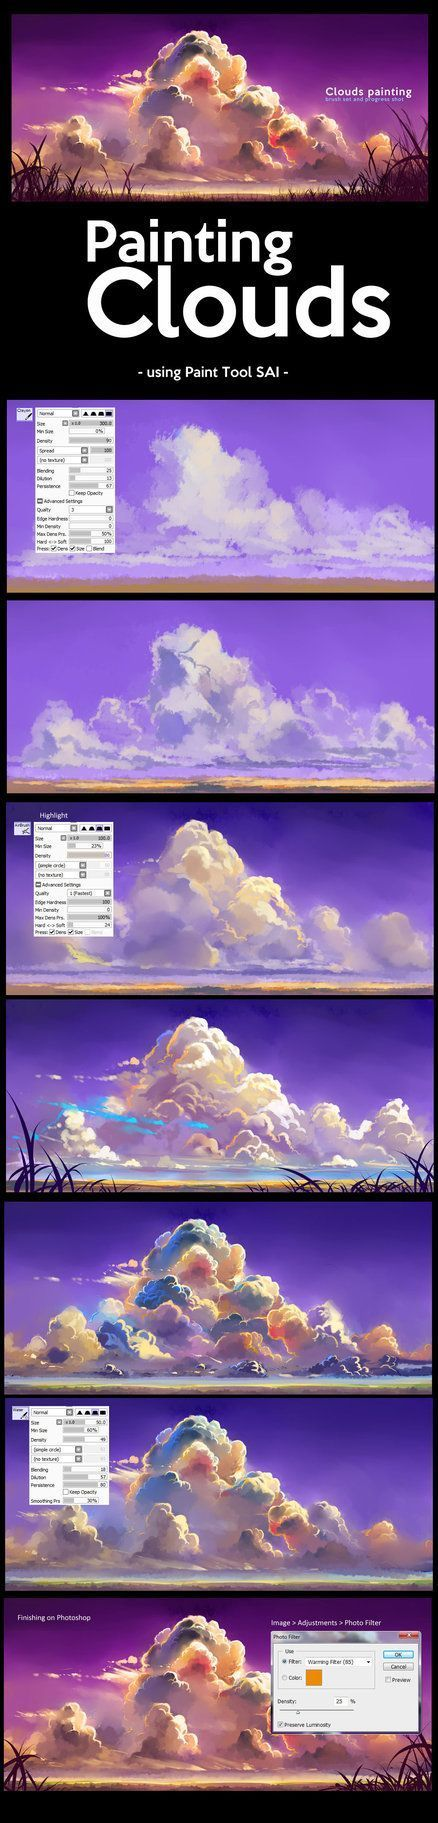 Painting Clouds in Paint Tool SAI by http://ombobon.deviantart.com on @DeviantArt